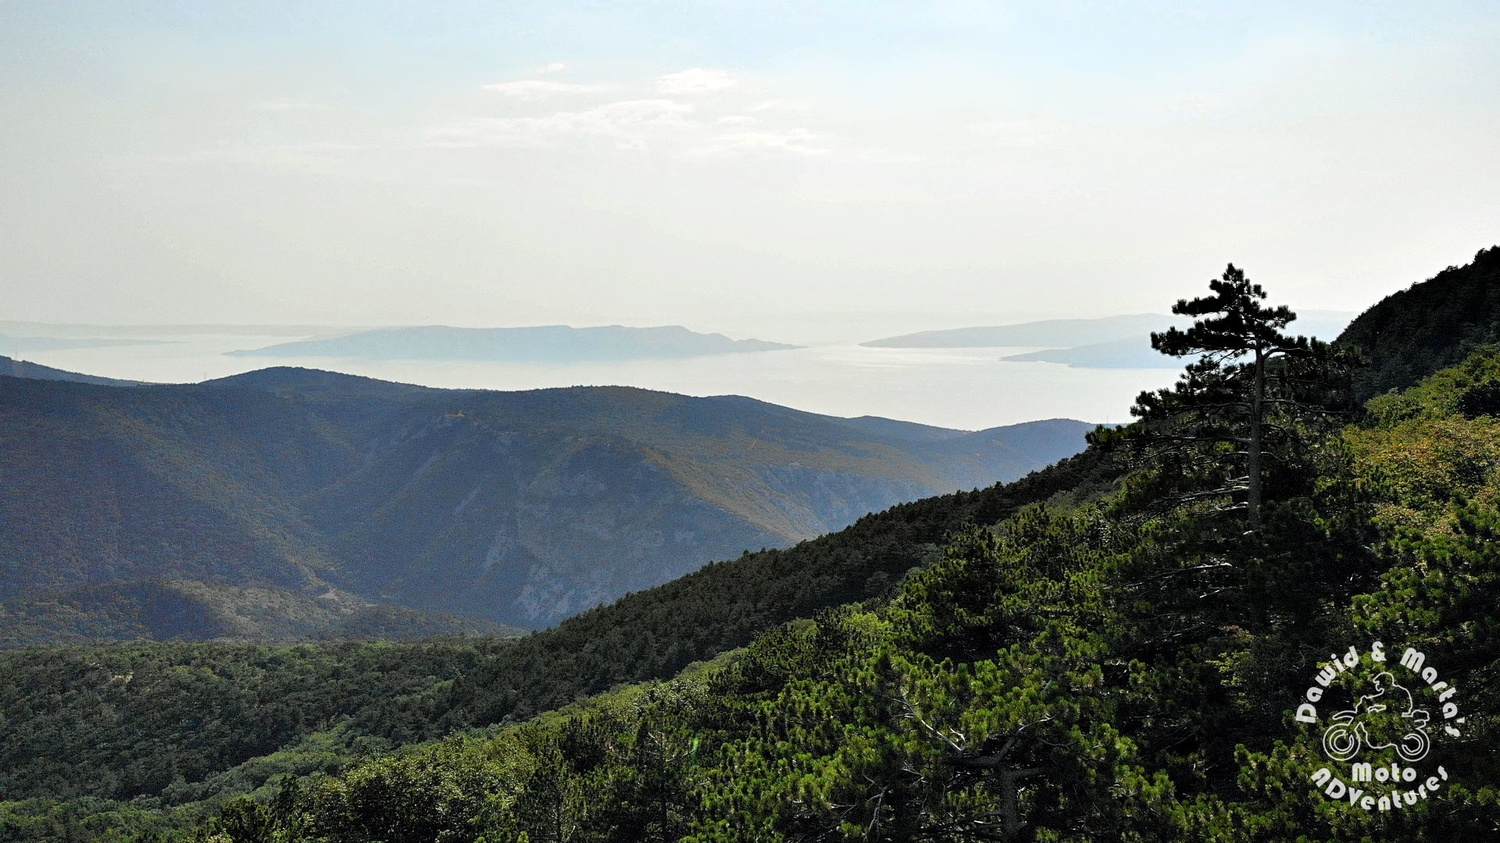 The Adriatic Sea glimpse from the top of the road 23 serpentines, Croatia